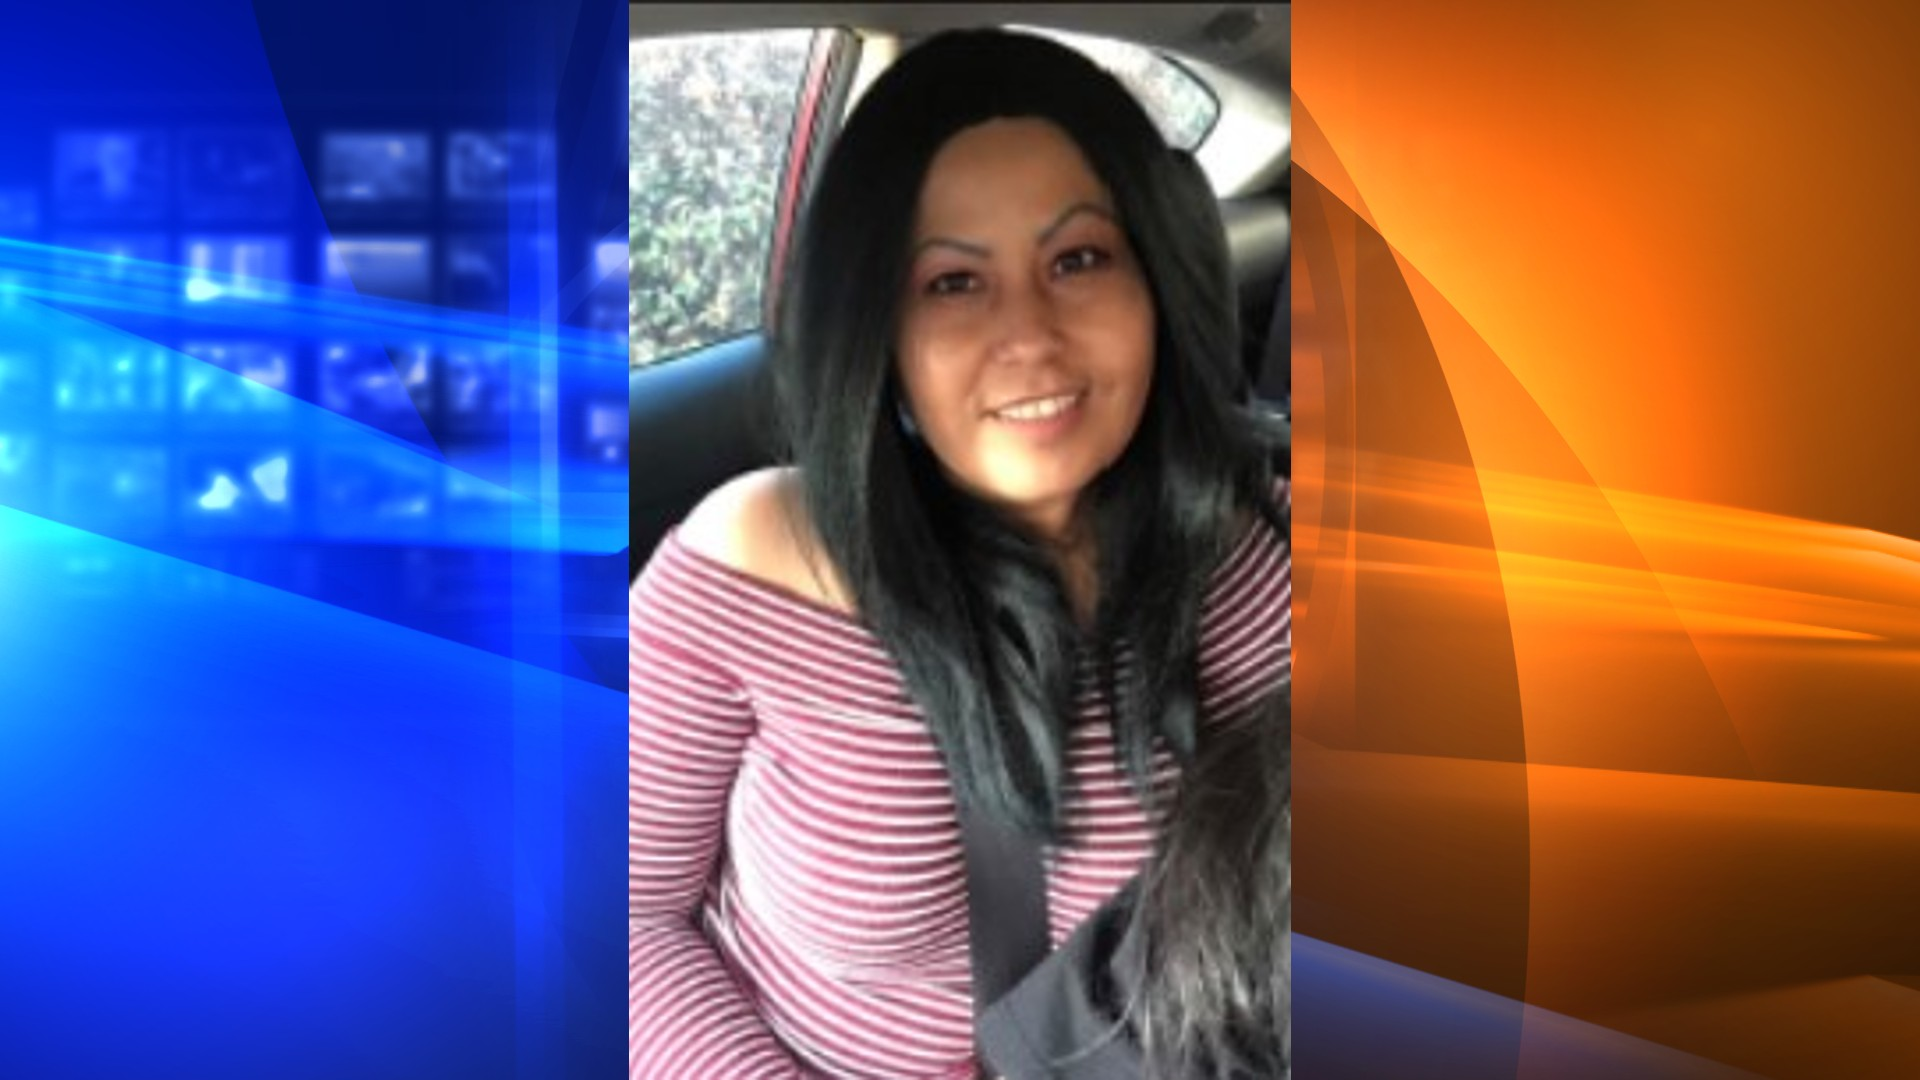 Abigail Aguilar Martinez, shown in this 2021 photo, has been missing since Sept. 13, 2021. (Los Angeles County Sheriff's Department)